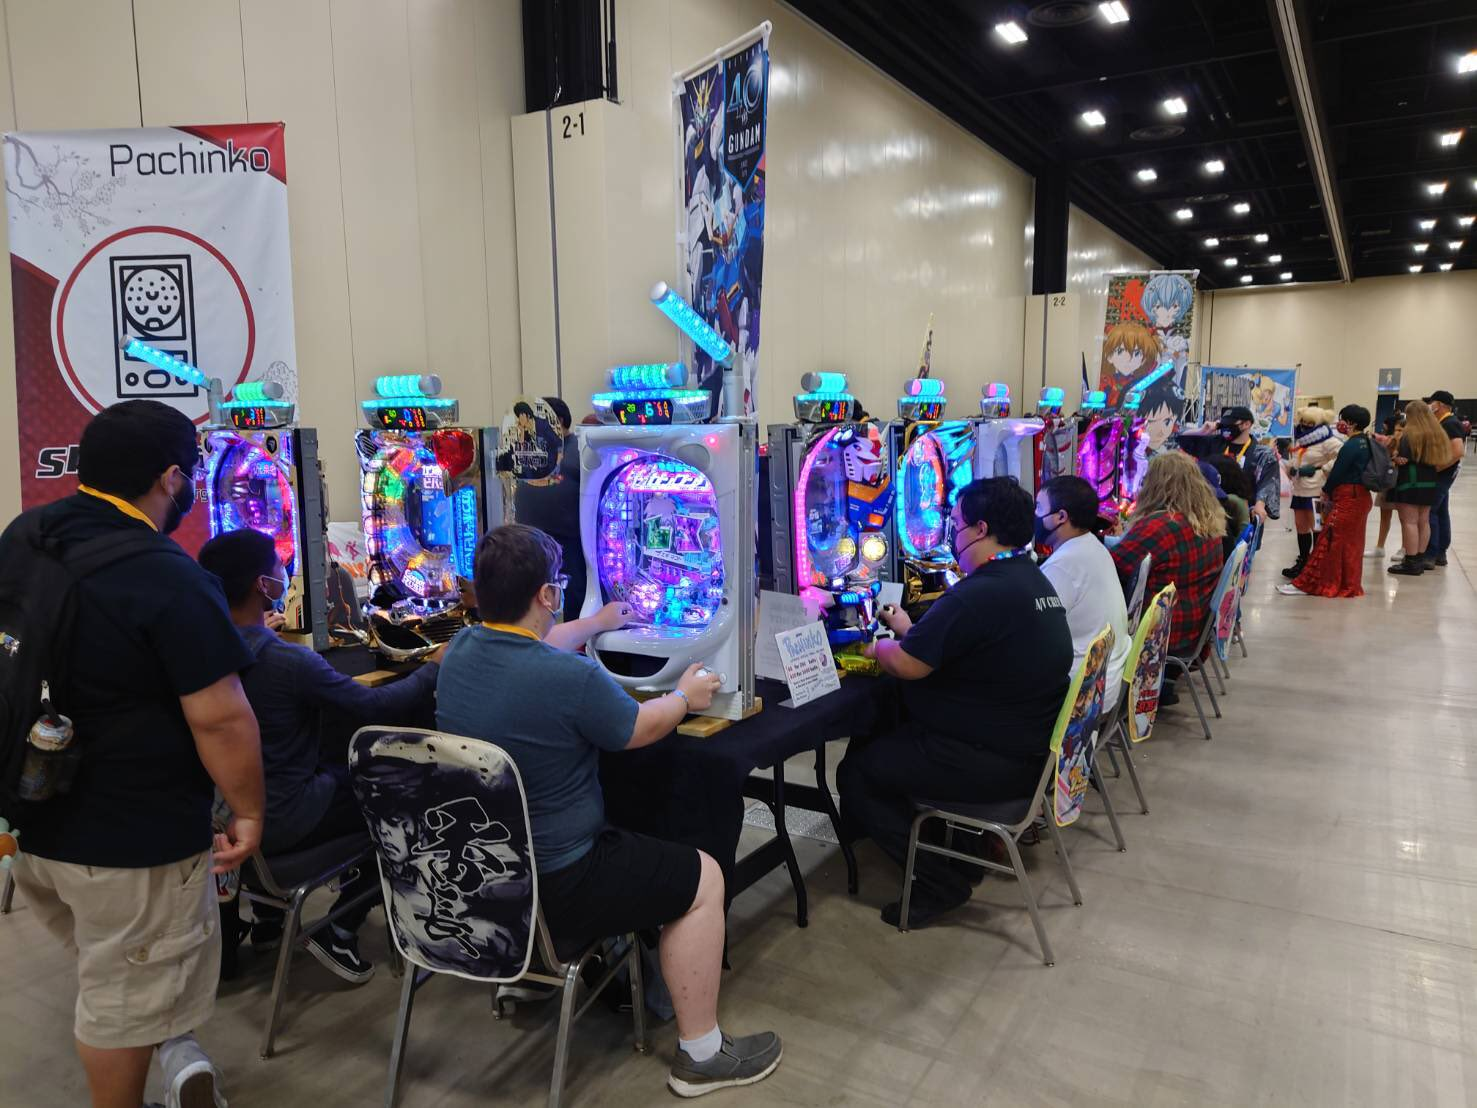 Game Room Anime Frontier Fort Worth, Texas Anime Convention